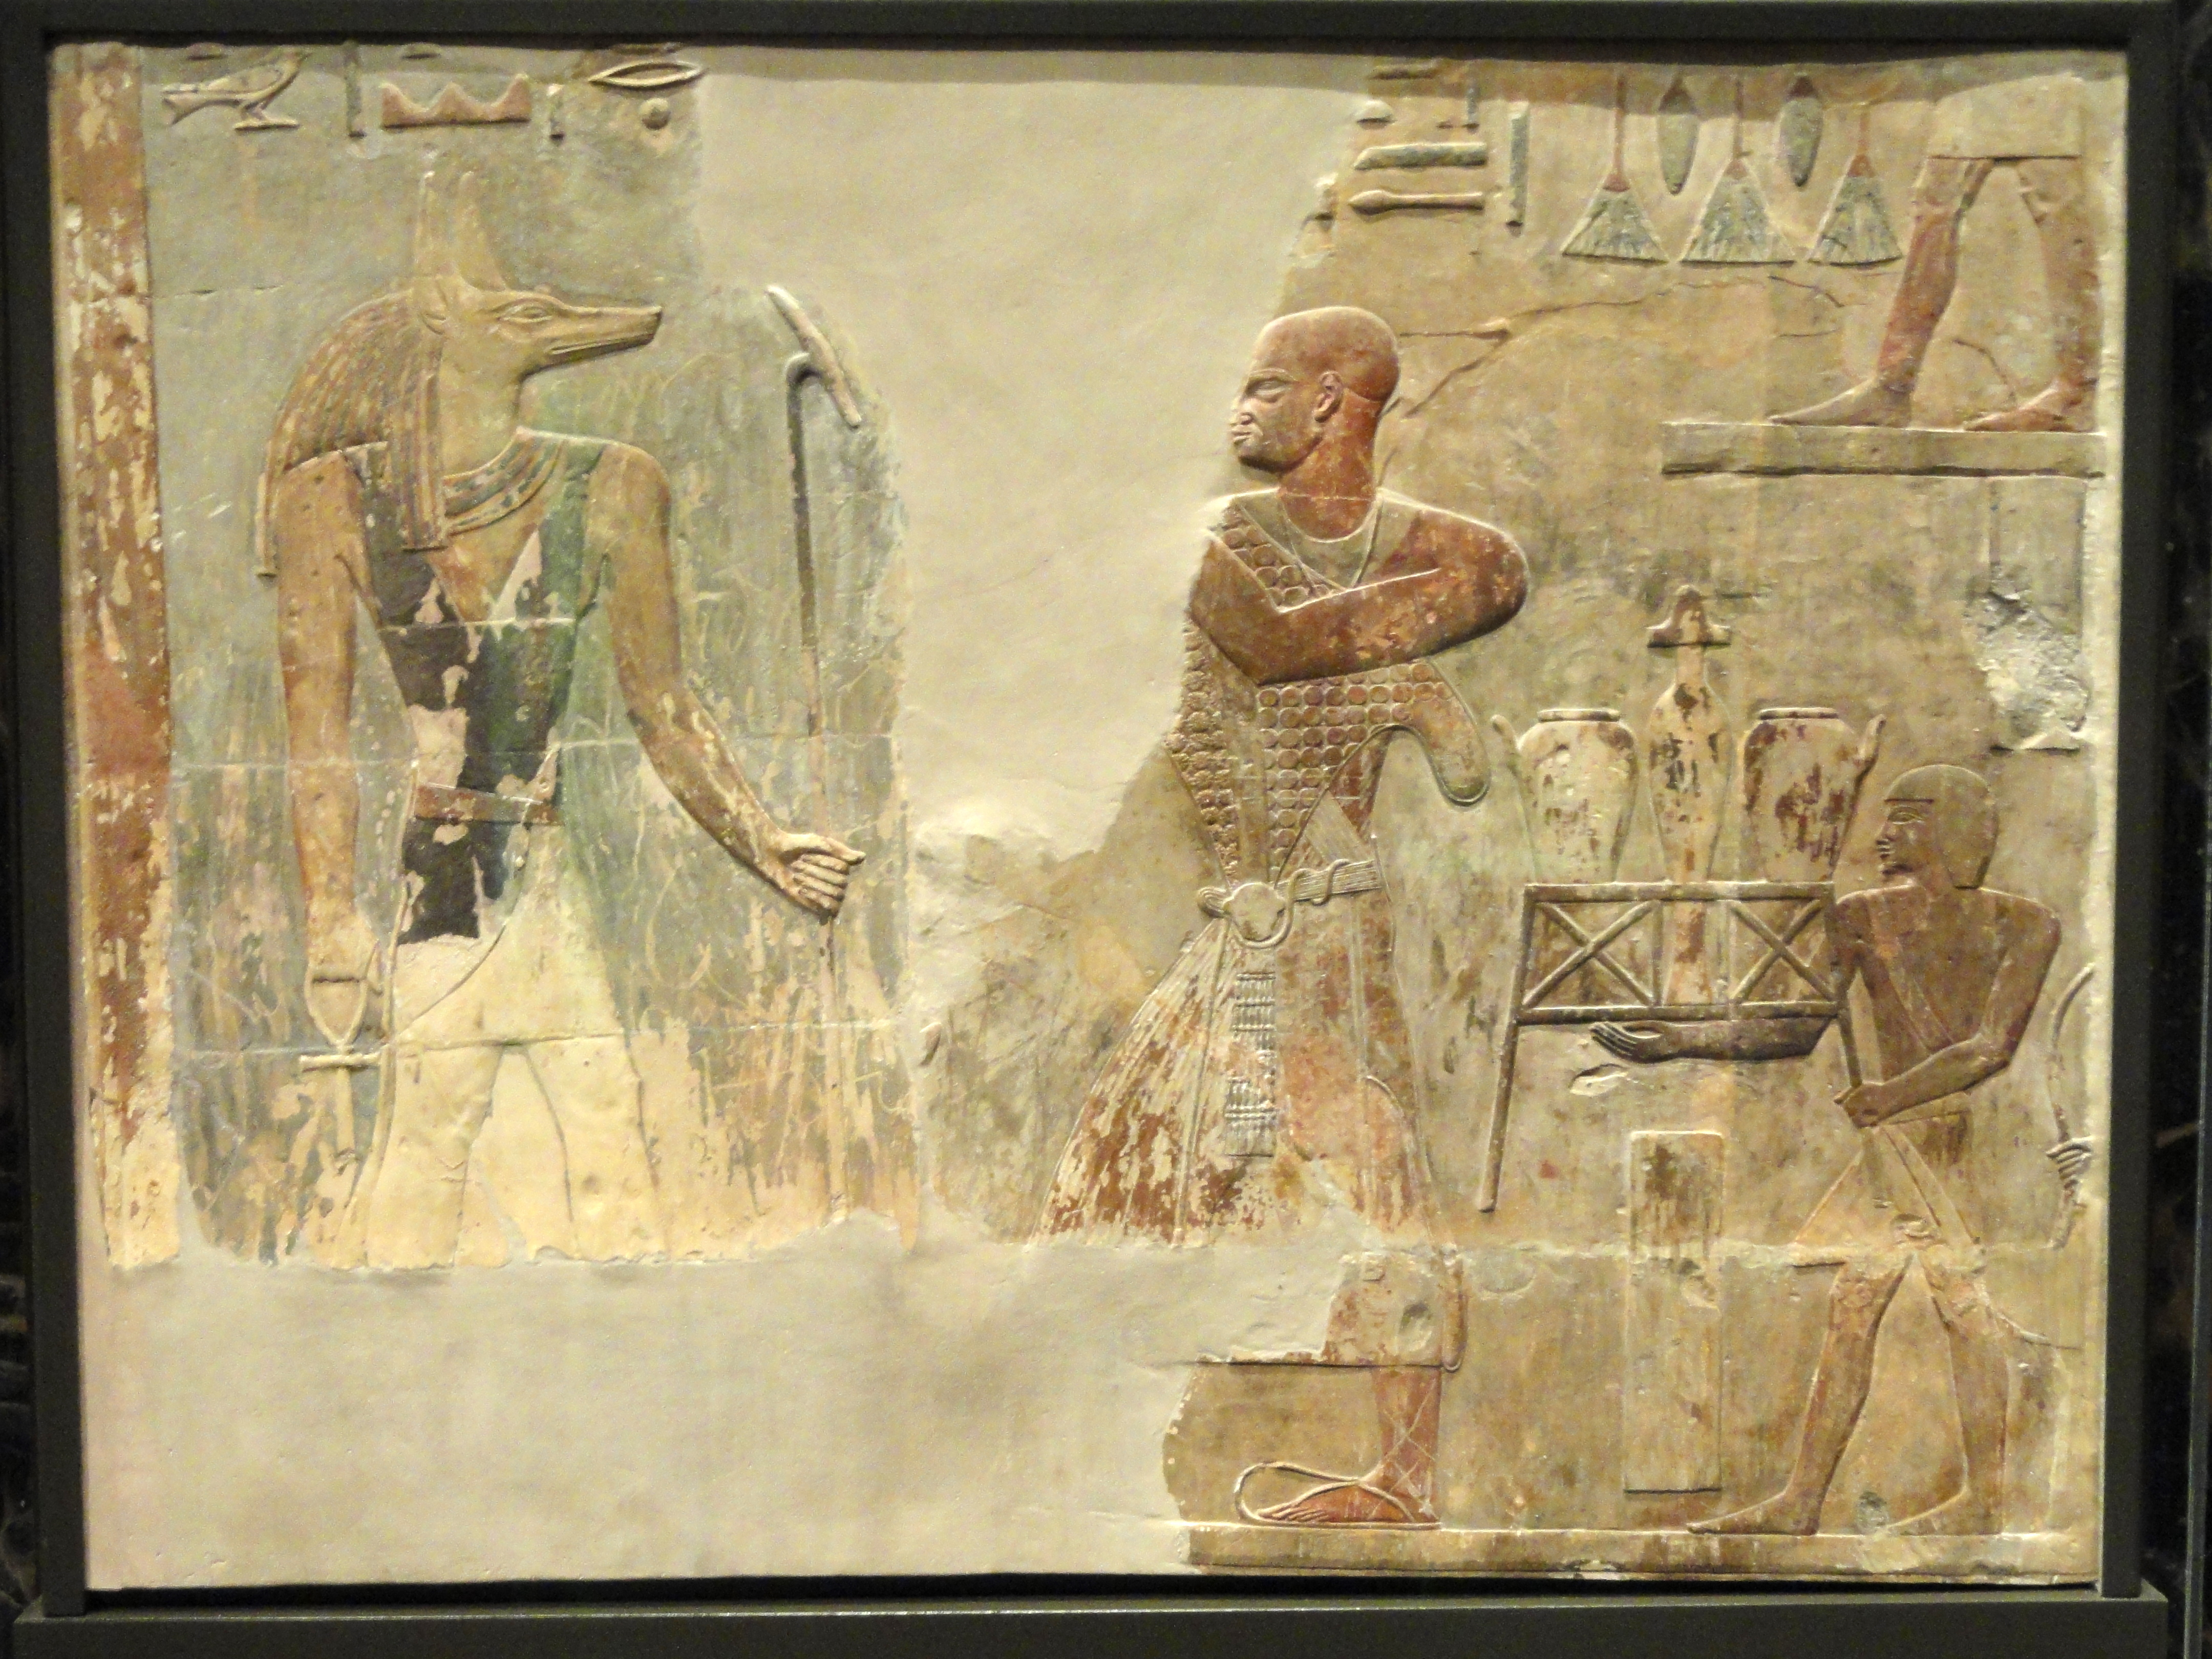 filementuemhat and anubis relief thebes late 25th to